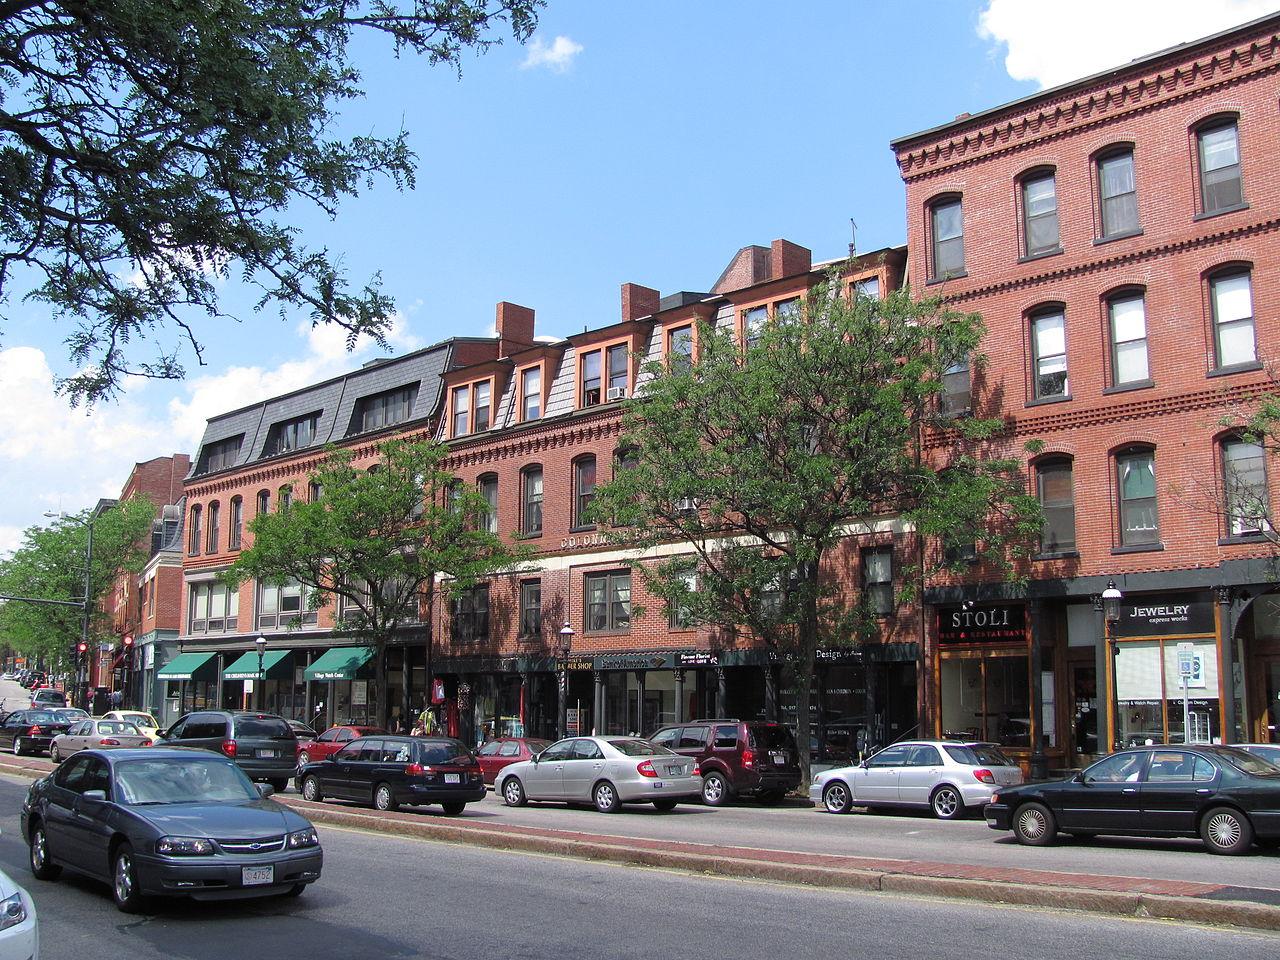 Brookline Village Captures The Quaint Small Town Feel In Mix Of Busy City Streets Traditional S And Restaurants Line Either Side